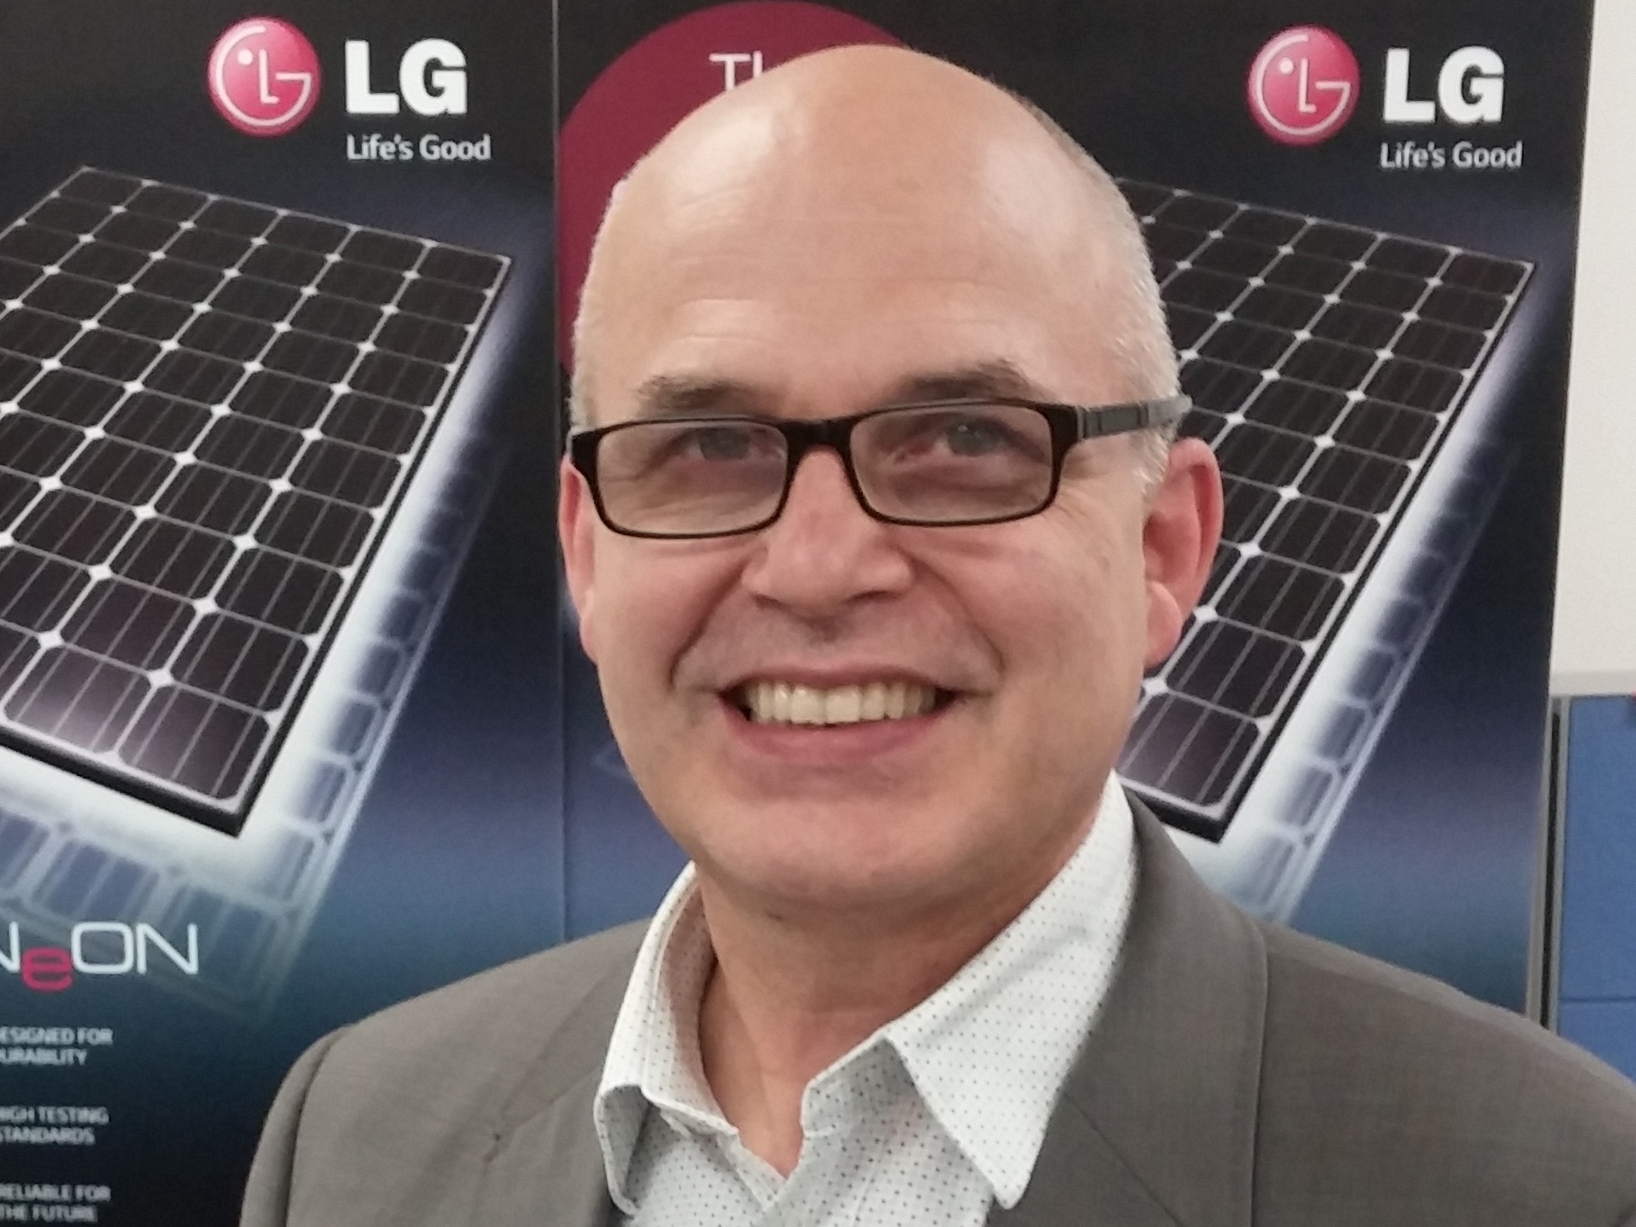 According to LG general manager Solar & Energy Markus Lambert, the time is now to think and design for a sun-powered future. Image: Supplied.